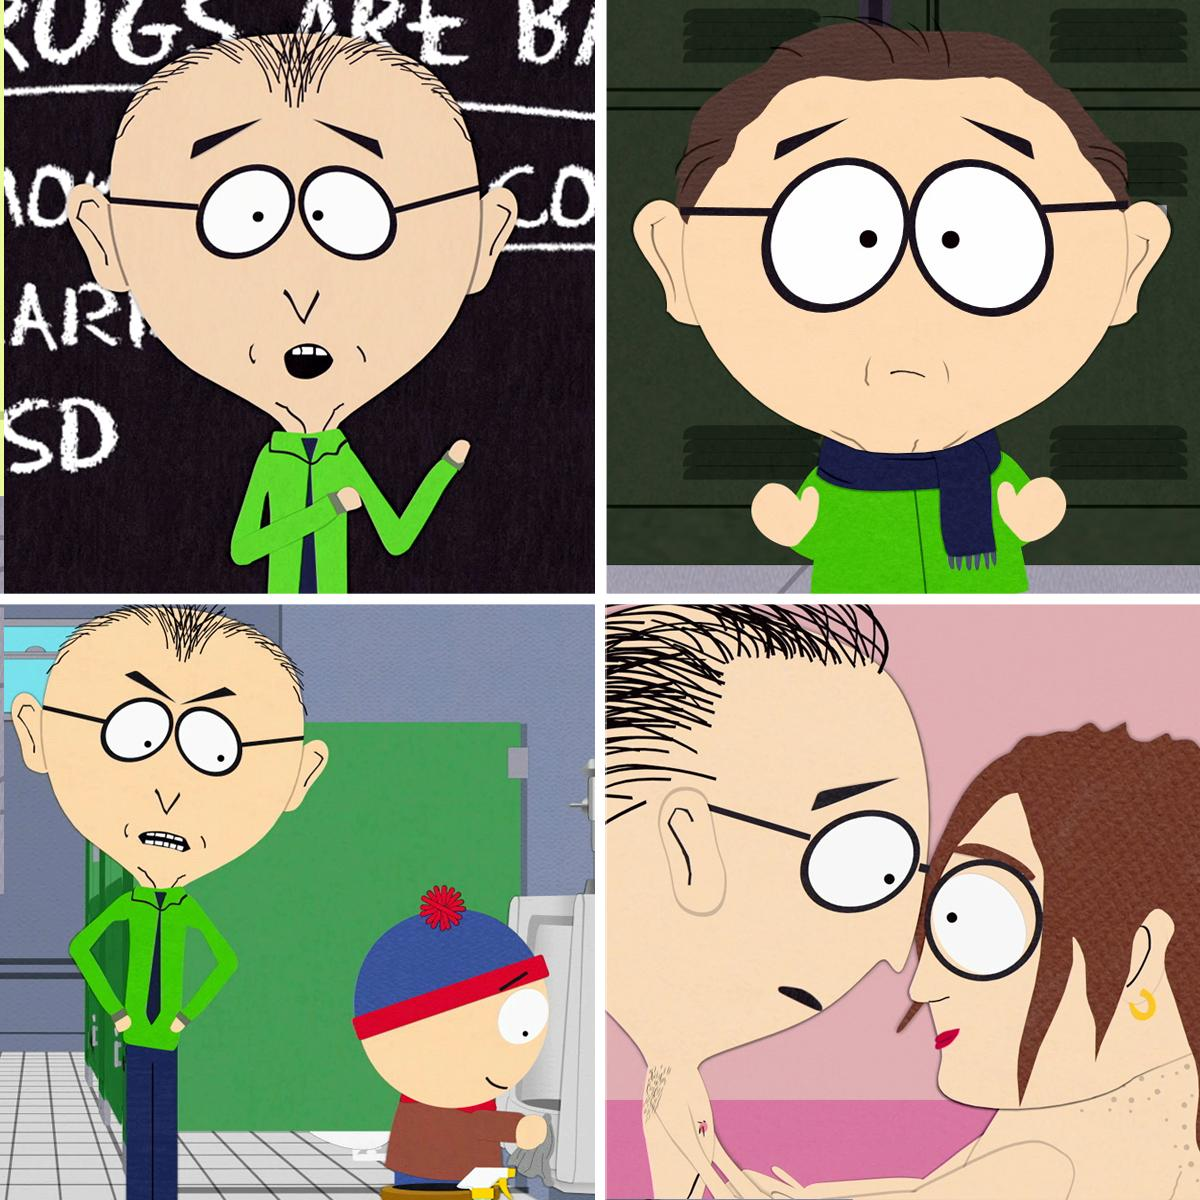 Mr mackey south park mkay